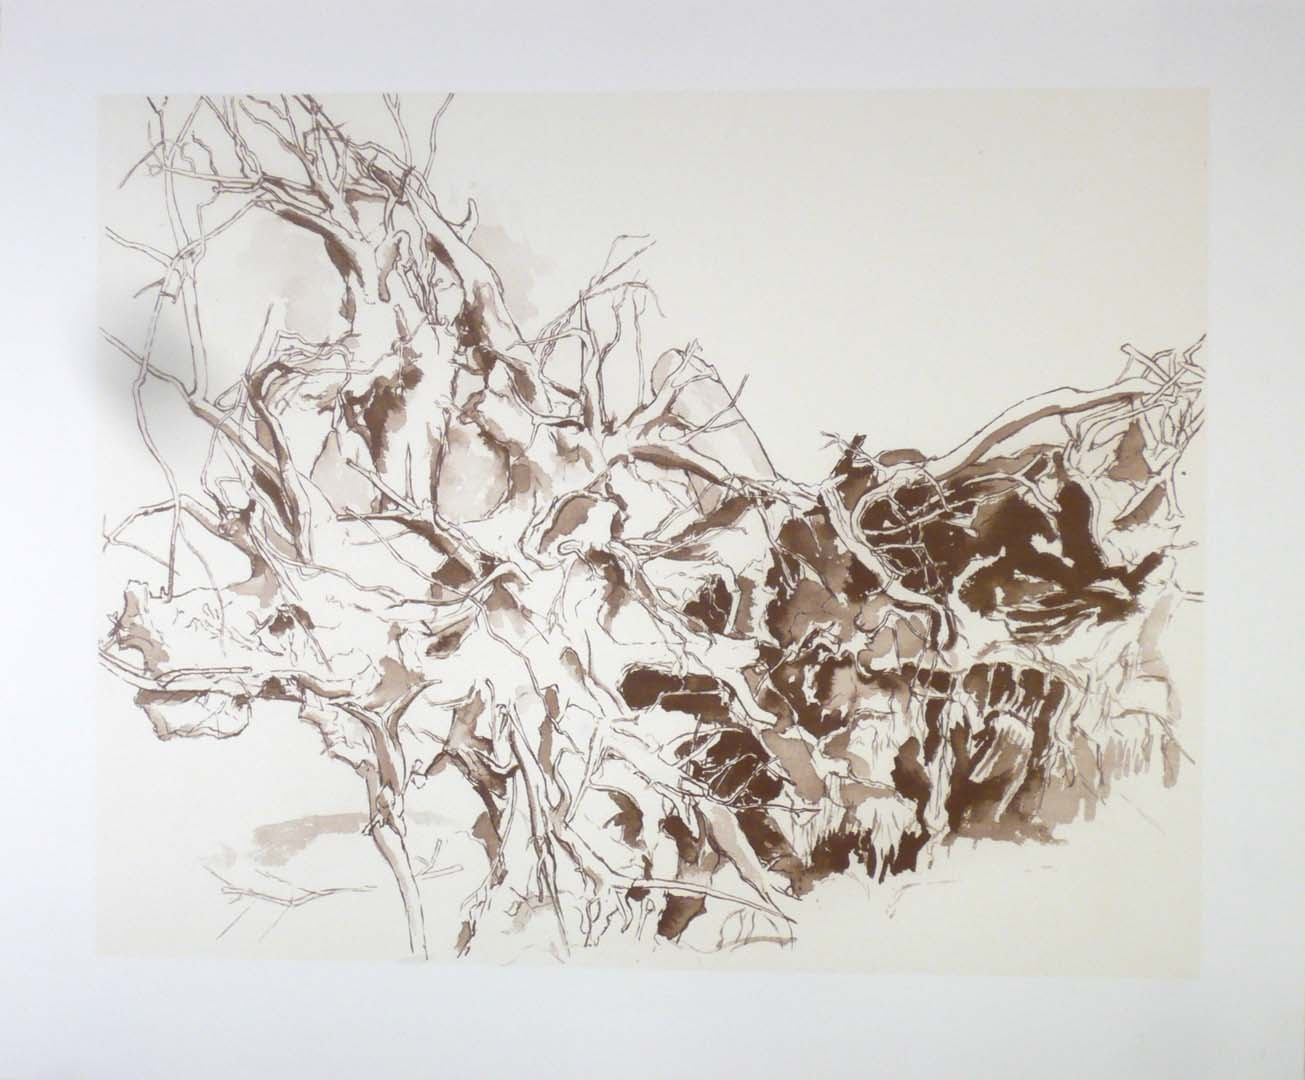 2011 Uprooted Tree #2 Lithograph on Paper 20.5 x 24.5